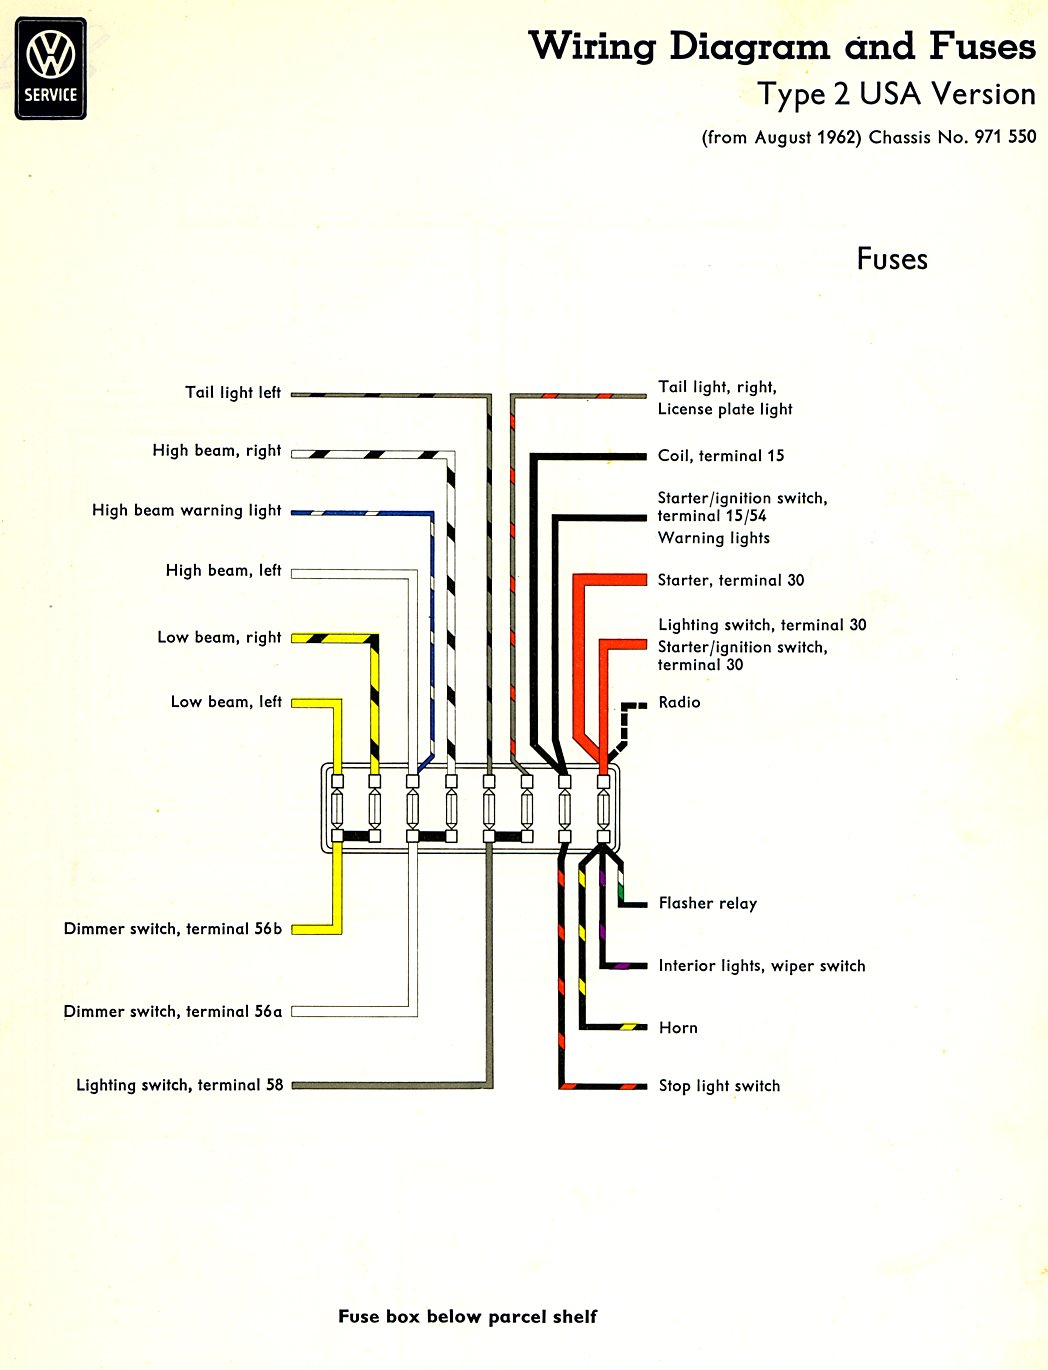 1974 Vw Fuse Box Wiring Just Another Diagram Blog For 2002 Volkswagen Beetle Library Rh 93 Akszer Eu 2000 Location